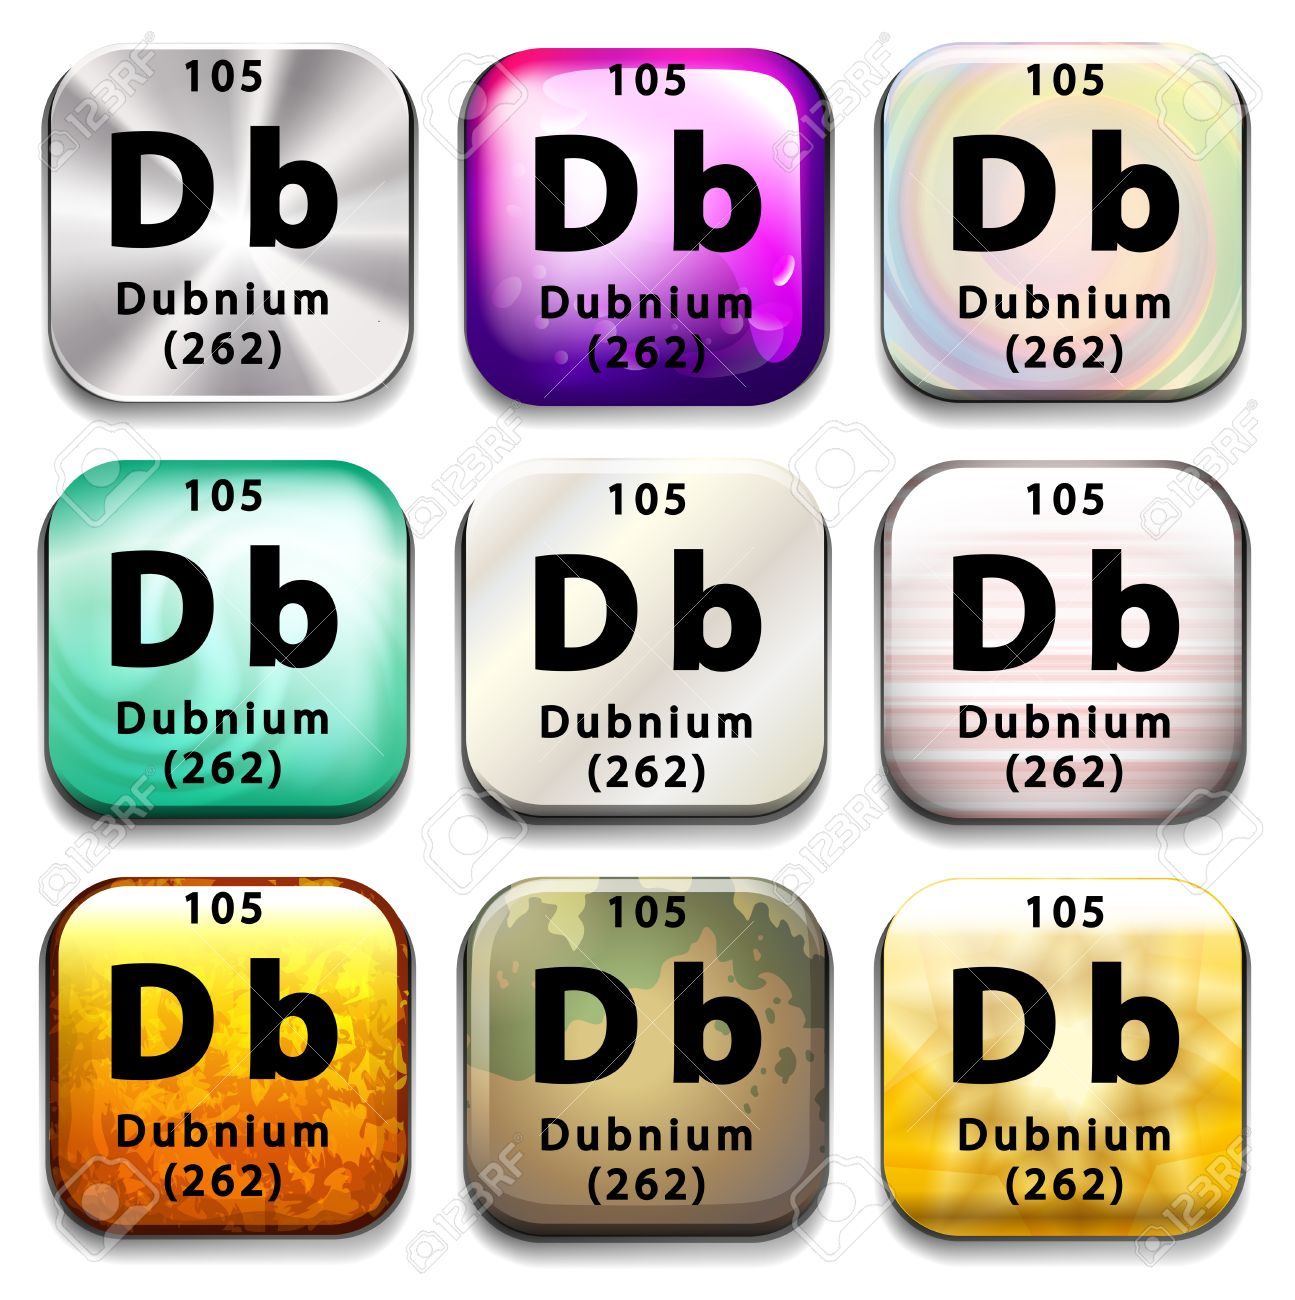 Db periodic table choice image periodic table images db periodic table choice image periodic table images a periodic table showing dubnium on a white gamestrikefo Images